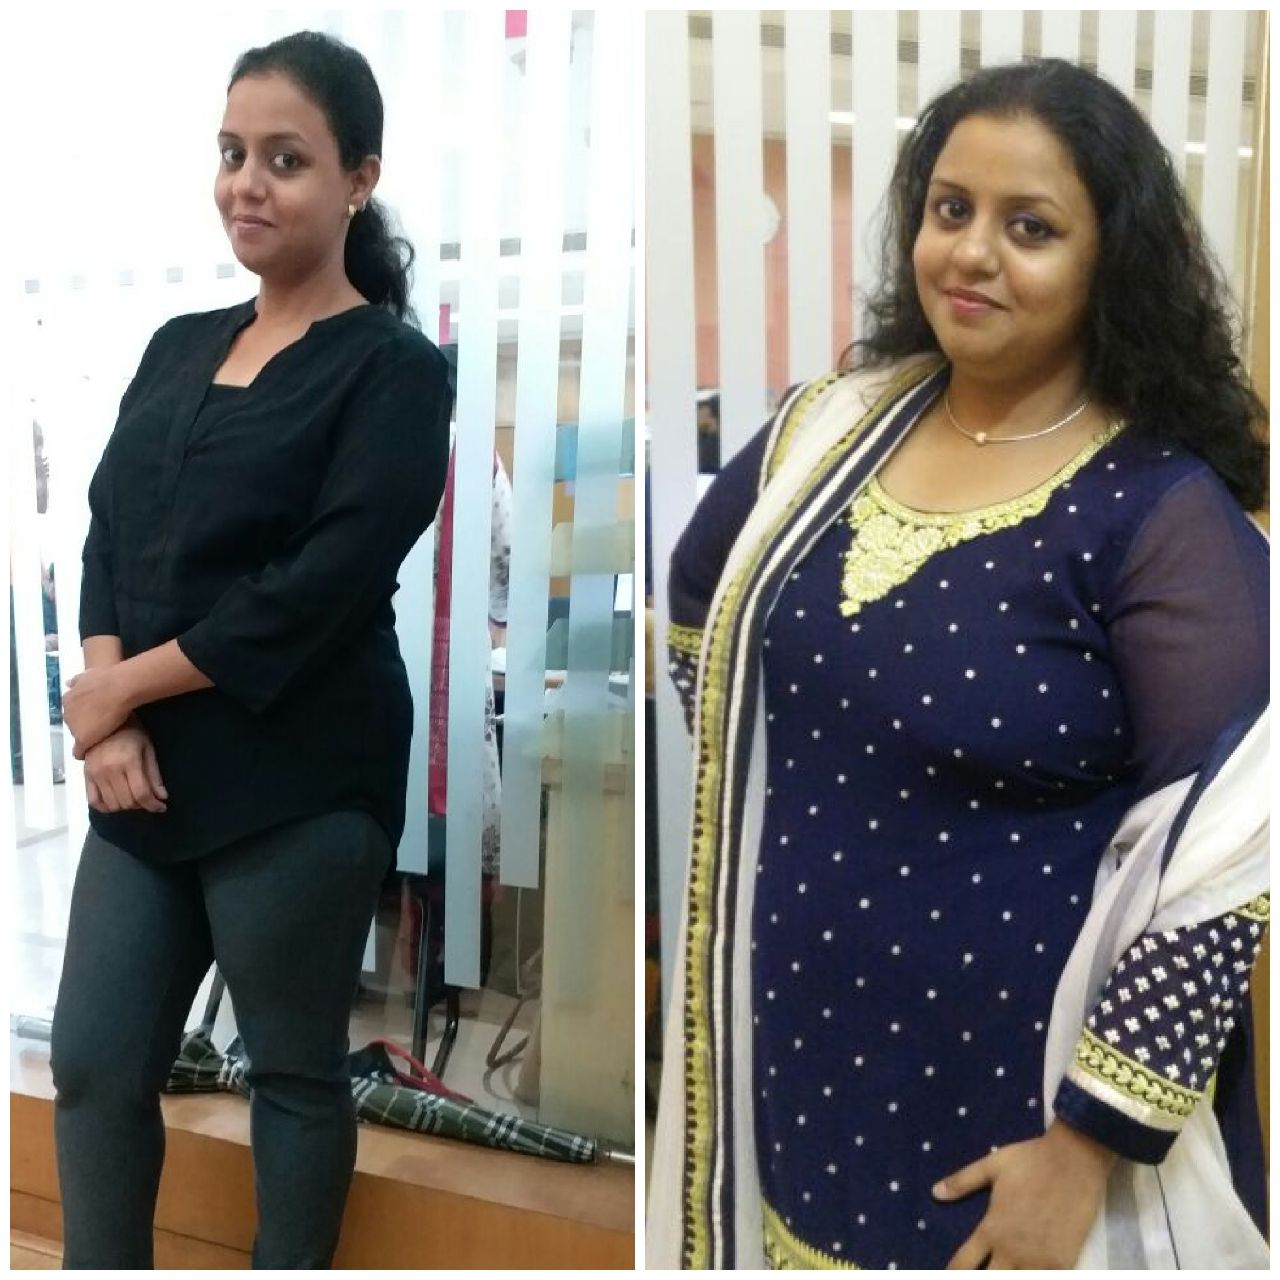 Hair Fall After Bariatric Surgery Dr Aparna Govil Bhasker